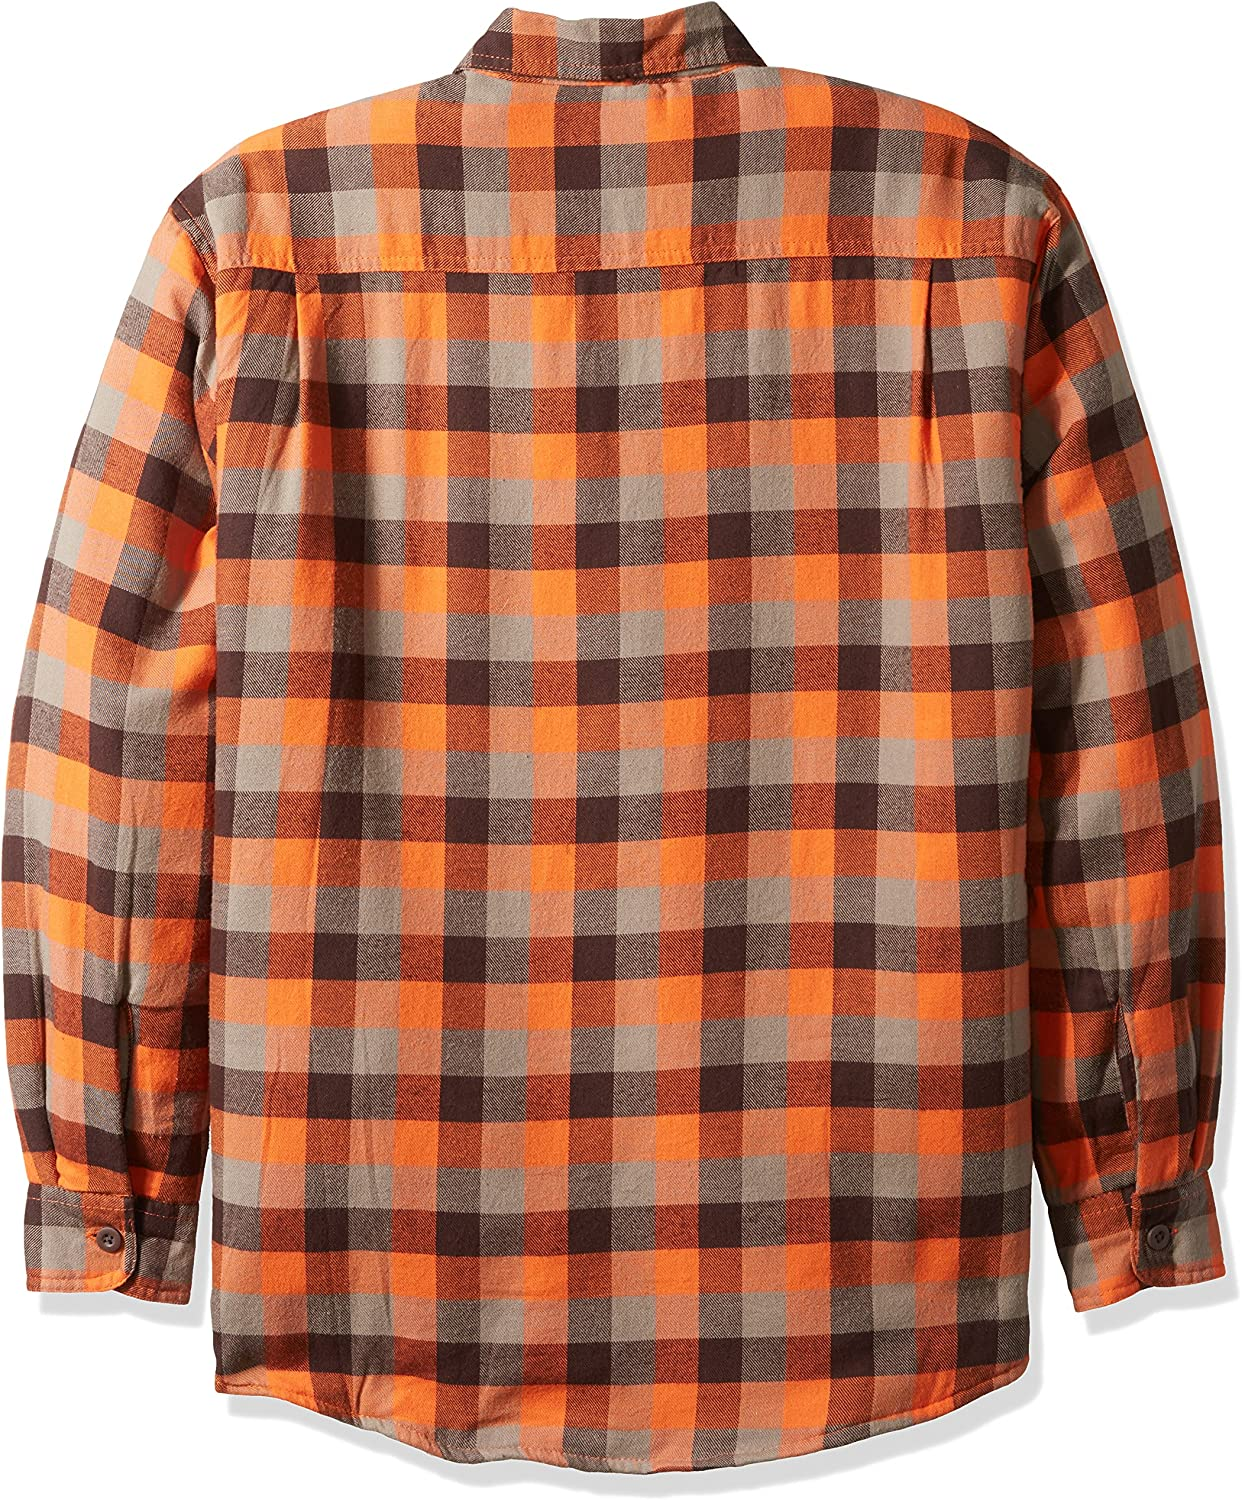 Wrangler Mens Authentics Long Sleeve Quilted Lined Flannel Shirt Button Down Shirt